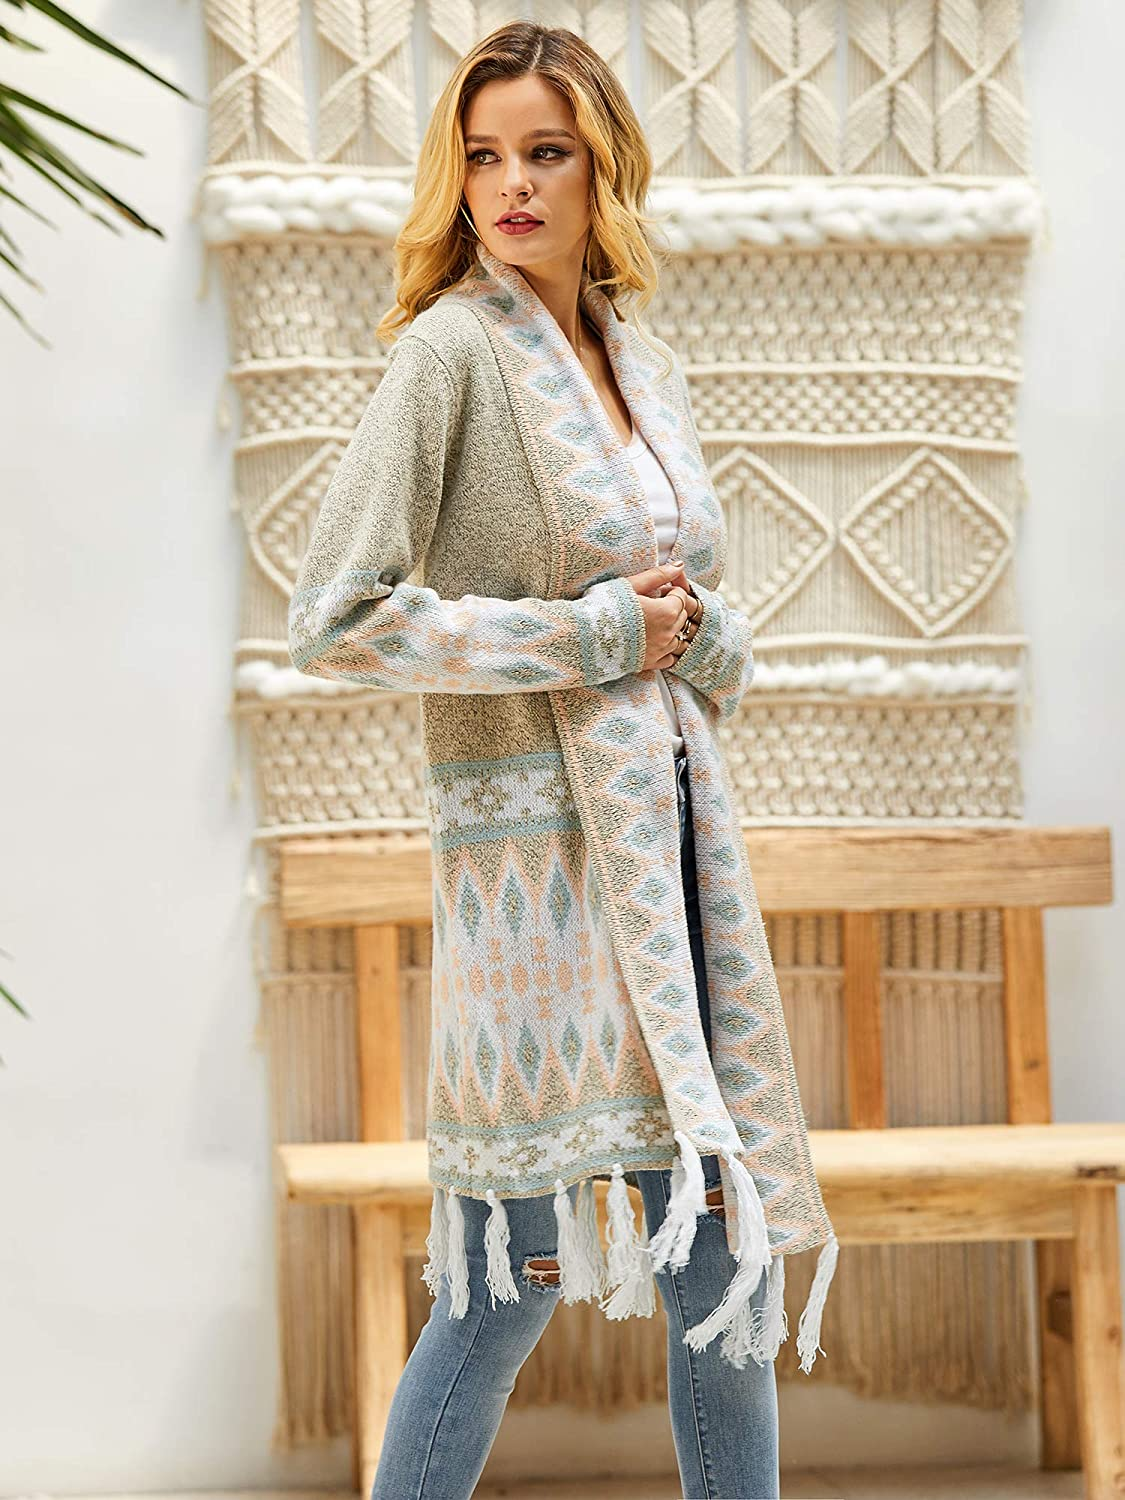 70s Jackets, Furs, Vests, Ponchos Misassy Womens Boho Open Front Long Cardigans Sweater Loose Long Sleeve Aztec Embroidery Tassels Kimono Duster Outwear $37.88 AT vintagedancer.com